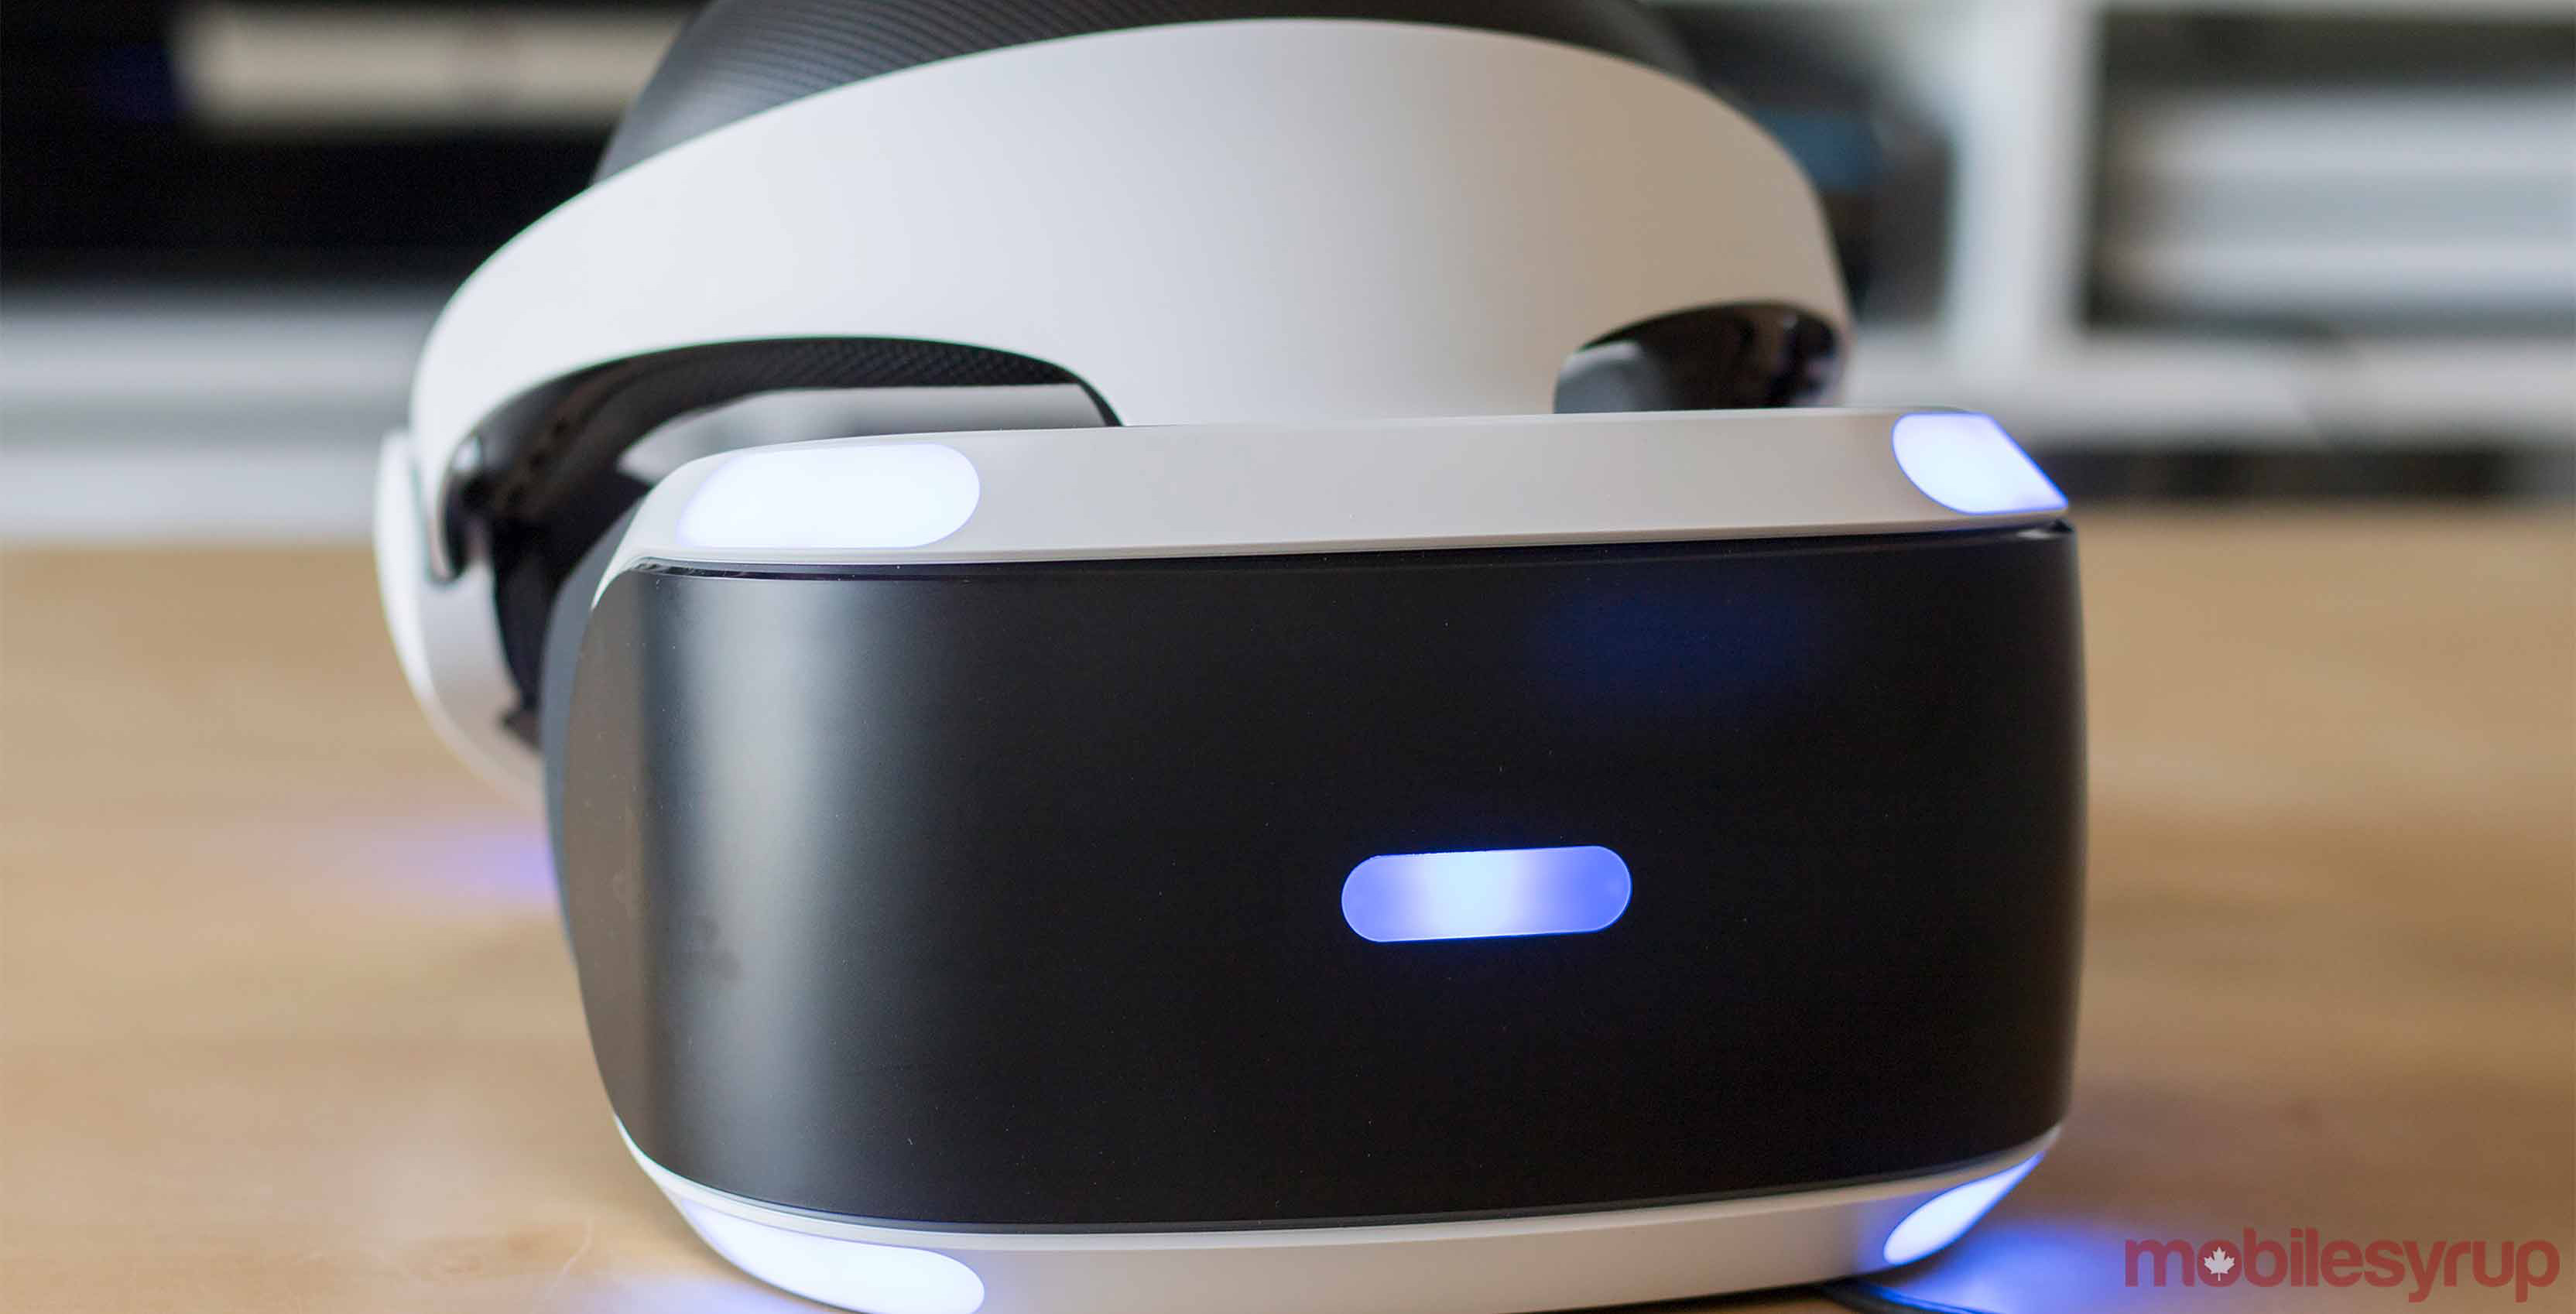 PlayStation VR headset on table